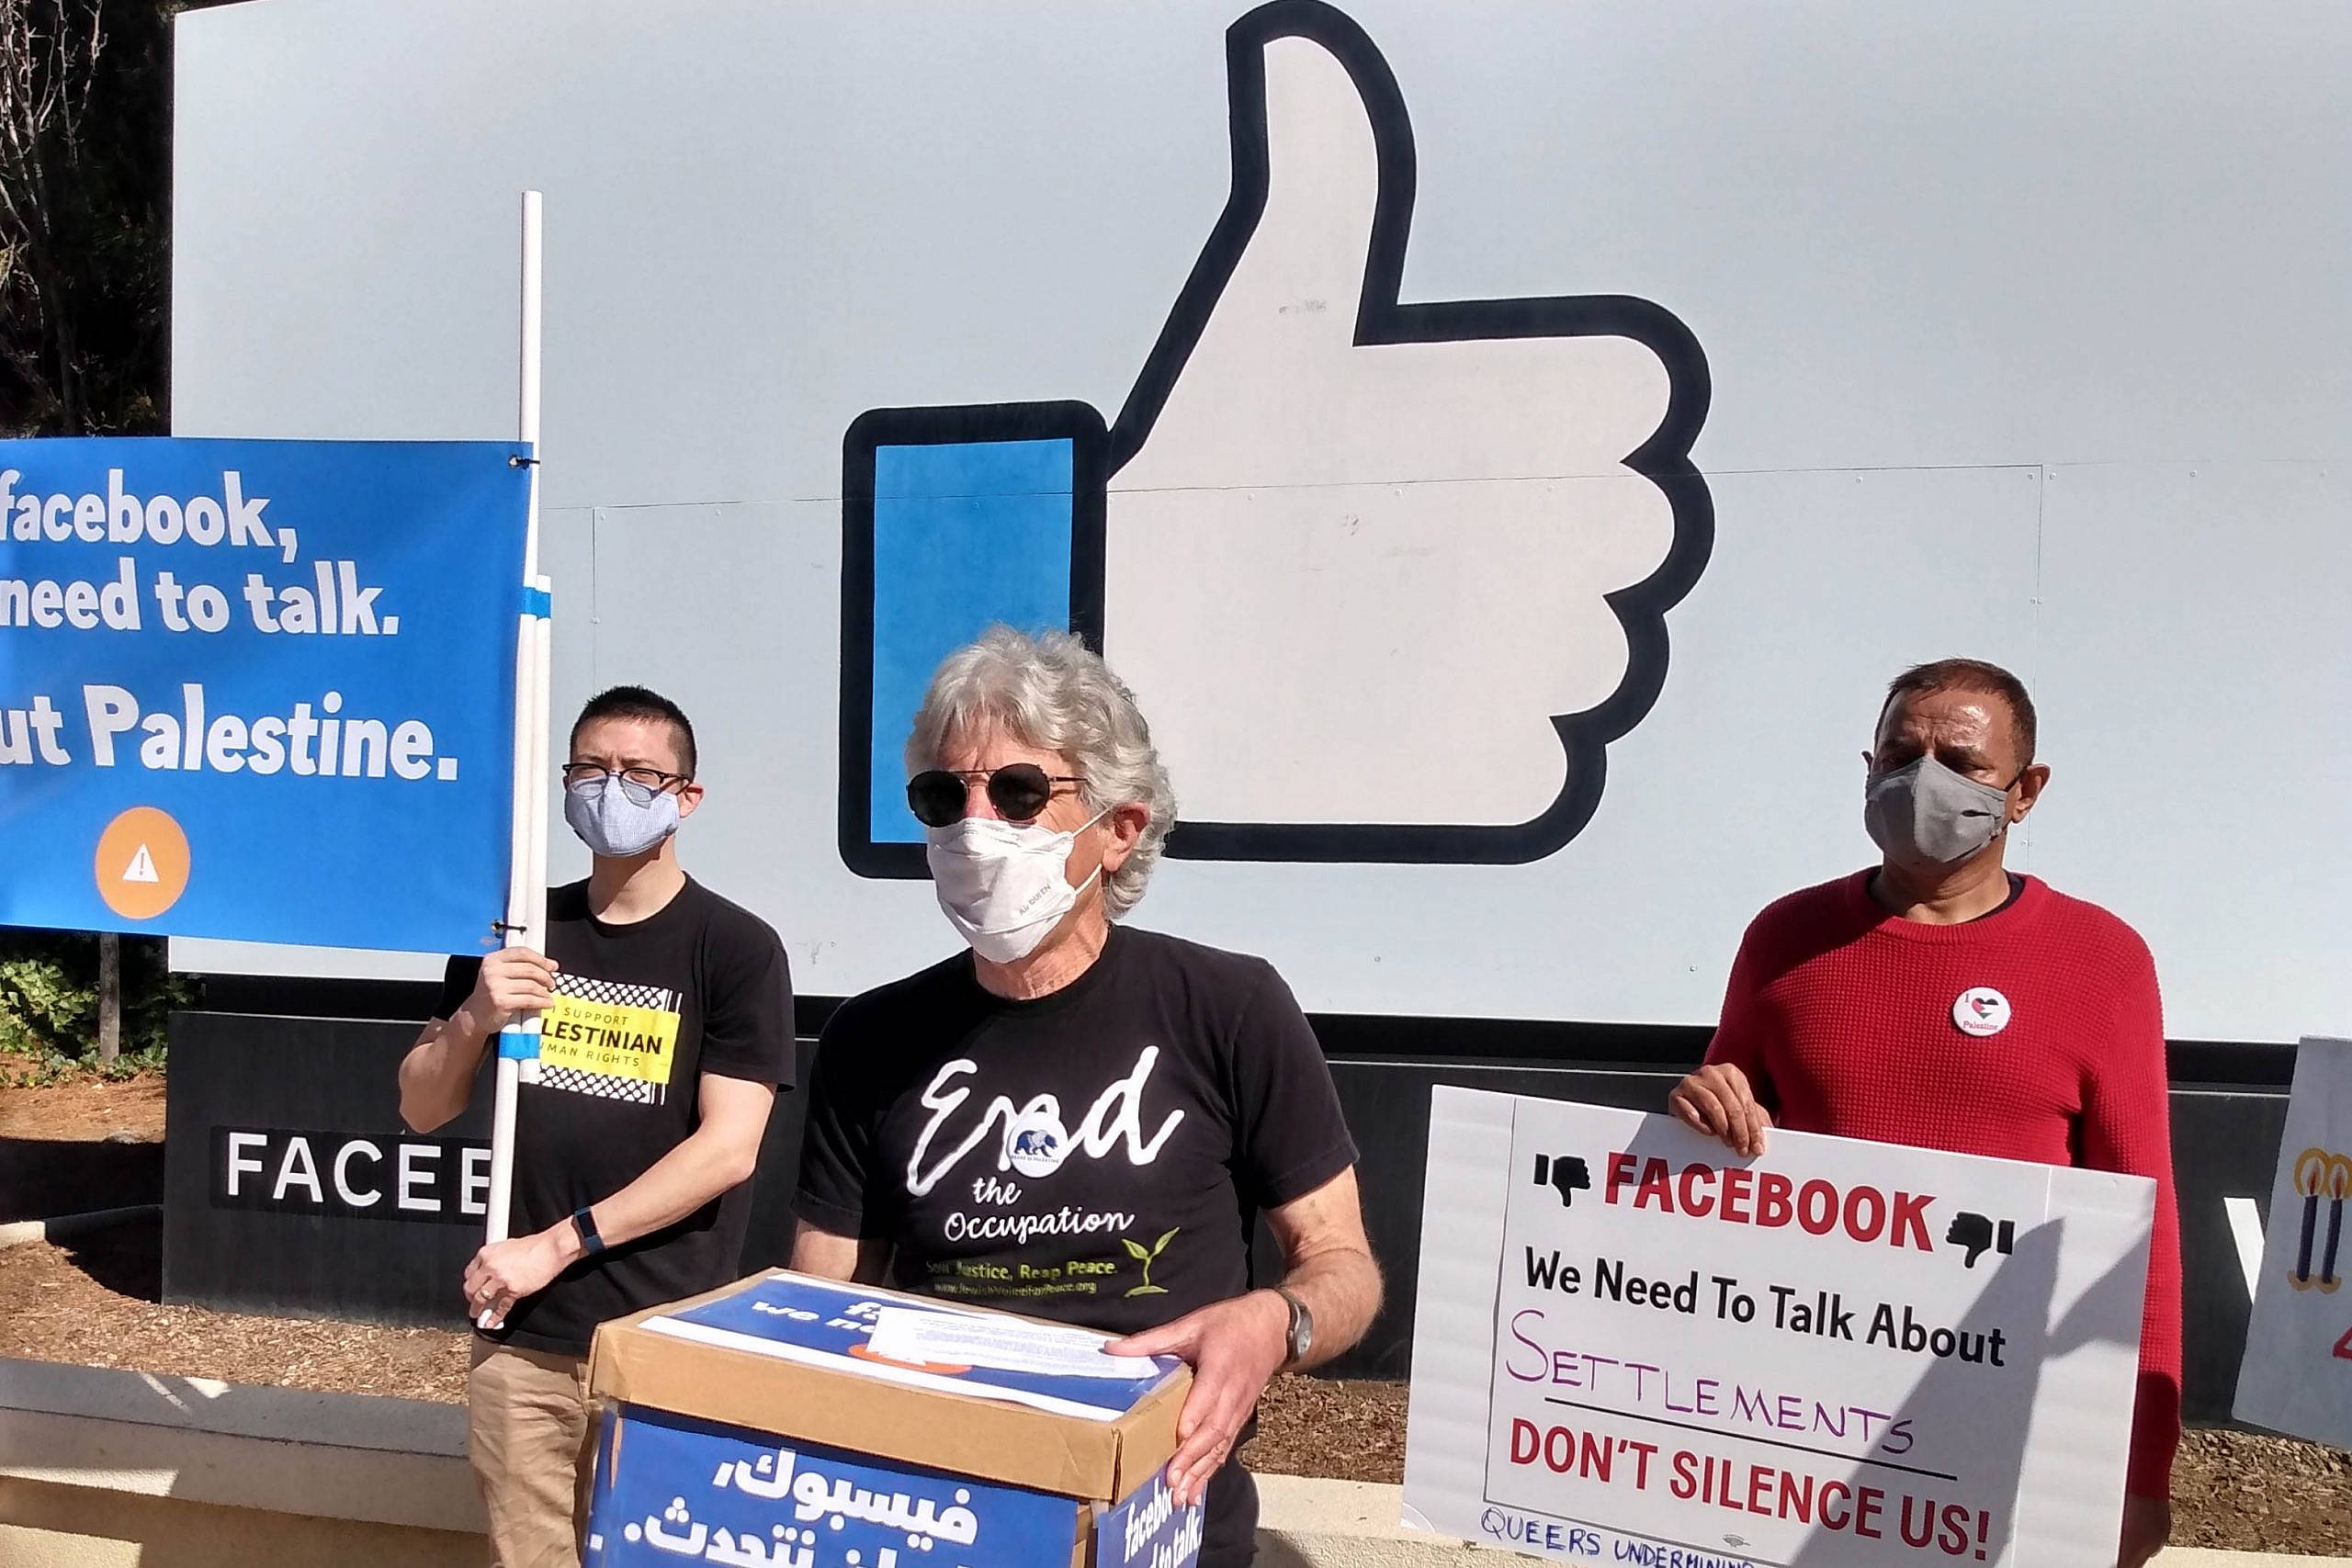 Pro-Palestine activists protest outside Facebook's headquarters in Menlo Park, California, demanding the company does not change its hate speech policy to conflate anti-Zionism with antisemitism, February 25, 2021. (Courtesy of Facebook, We Need To Talk Campaign)